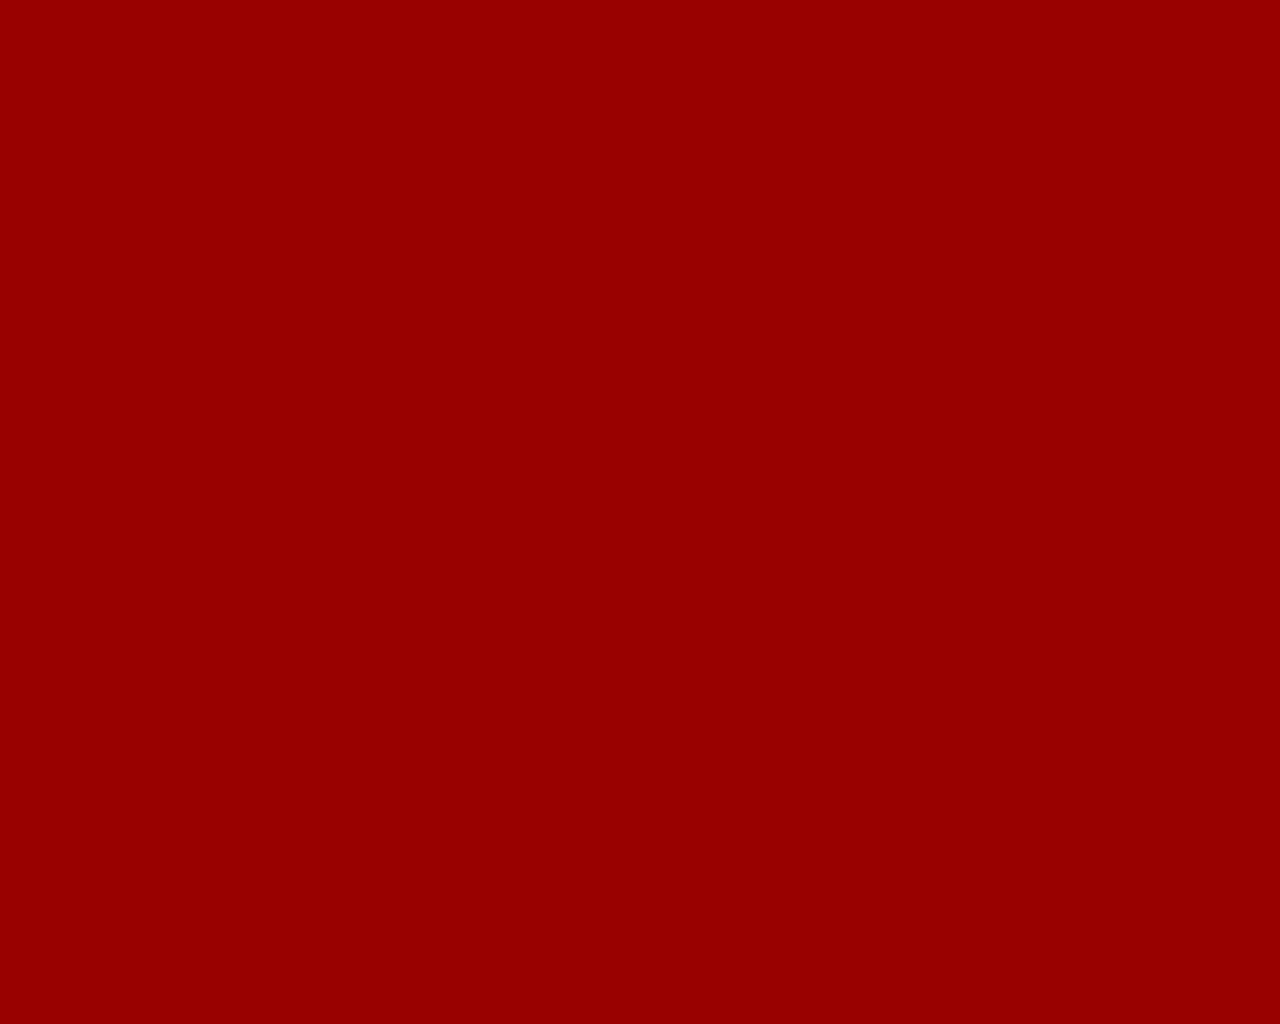 1280x1024 OU Crimson Red Solid Color Background